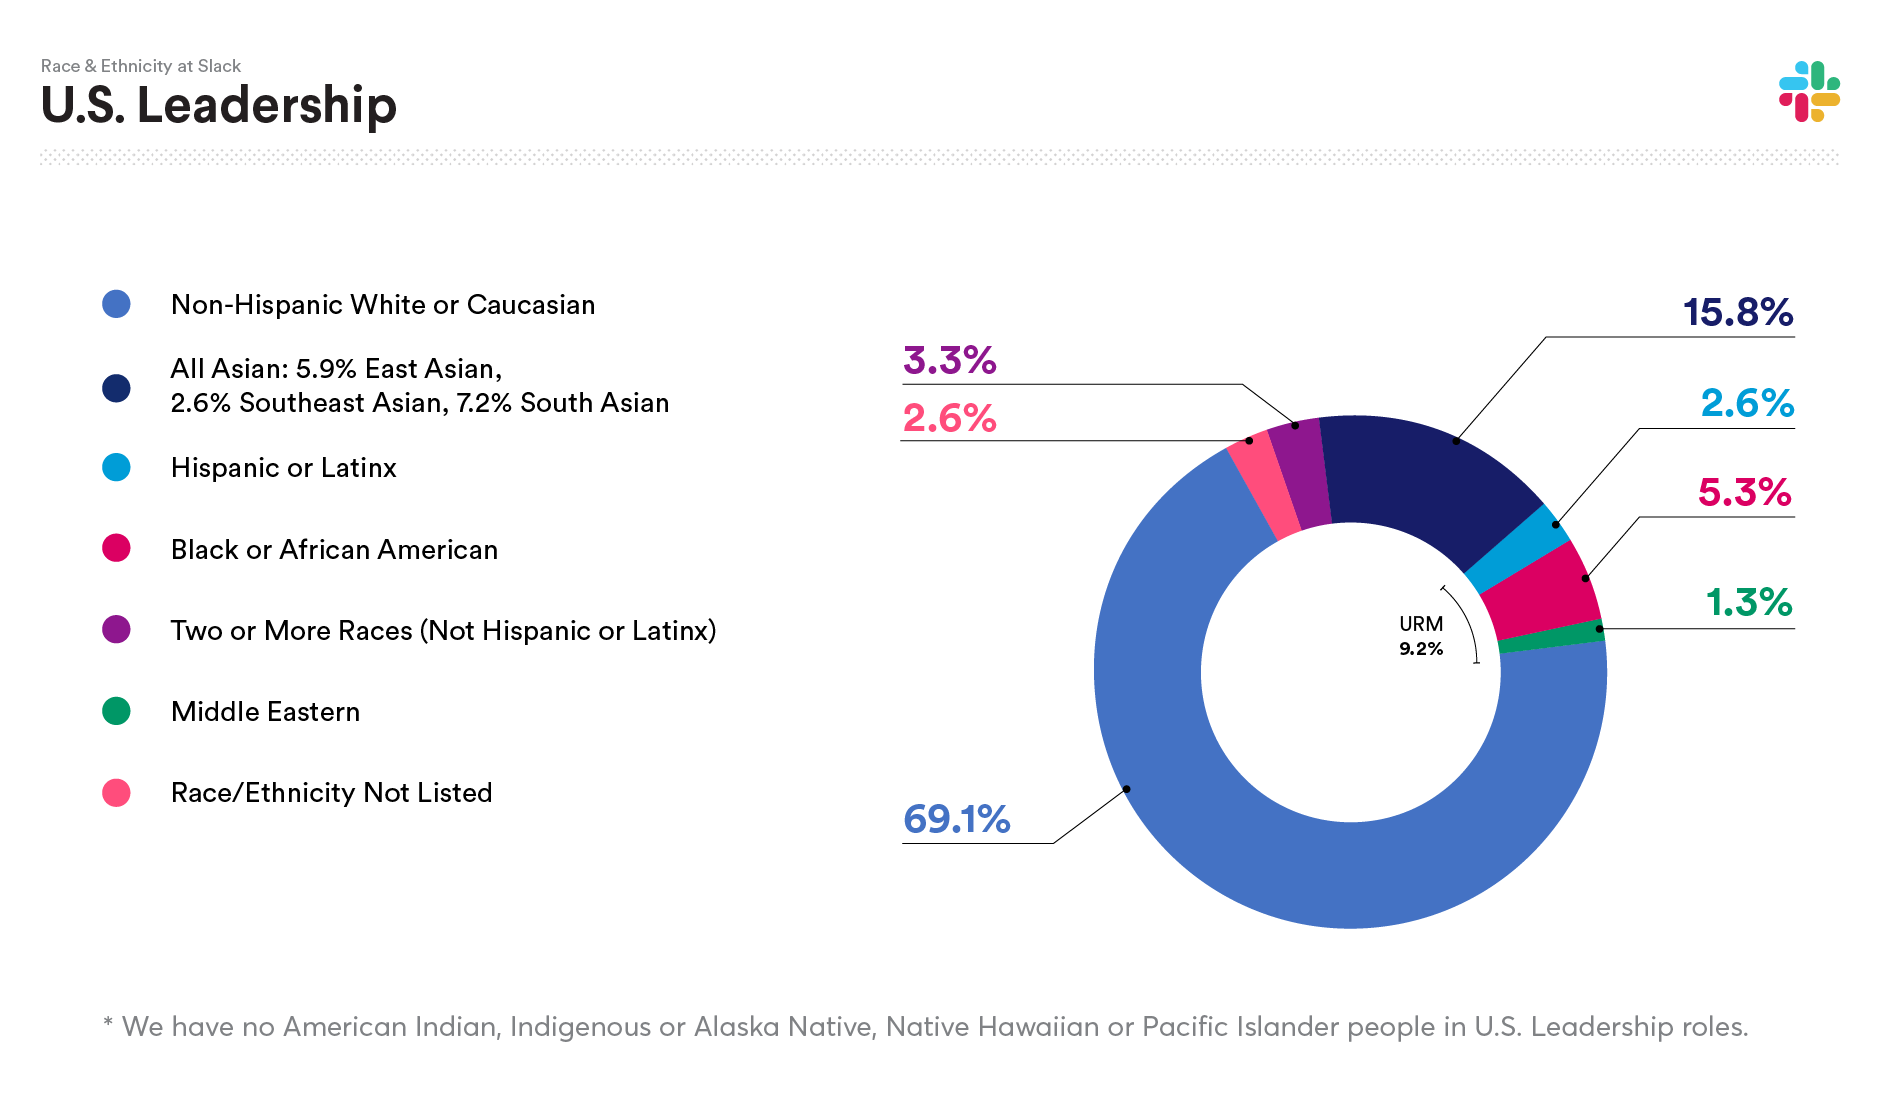 2019 Slack data on U.S. Leadership Race and Ethnicity: Non-Hispanic White or Caucasian 69.1%; All Asian: 15.8%; Hispanic or Latinx 2.6%; Black or African American 5.3%; Two or more races (not Hispanic or Latinx) 3.3%; Middle Eastern 1.3%; Native Hawaiian or Pacific Islander 0.0%; American Indian, Indigenous or Alaska Native 0.0%; Race/Ethnicity not listed 2.6%